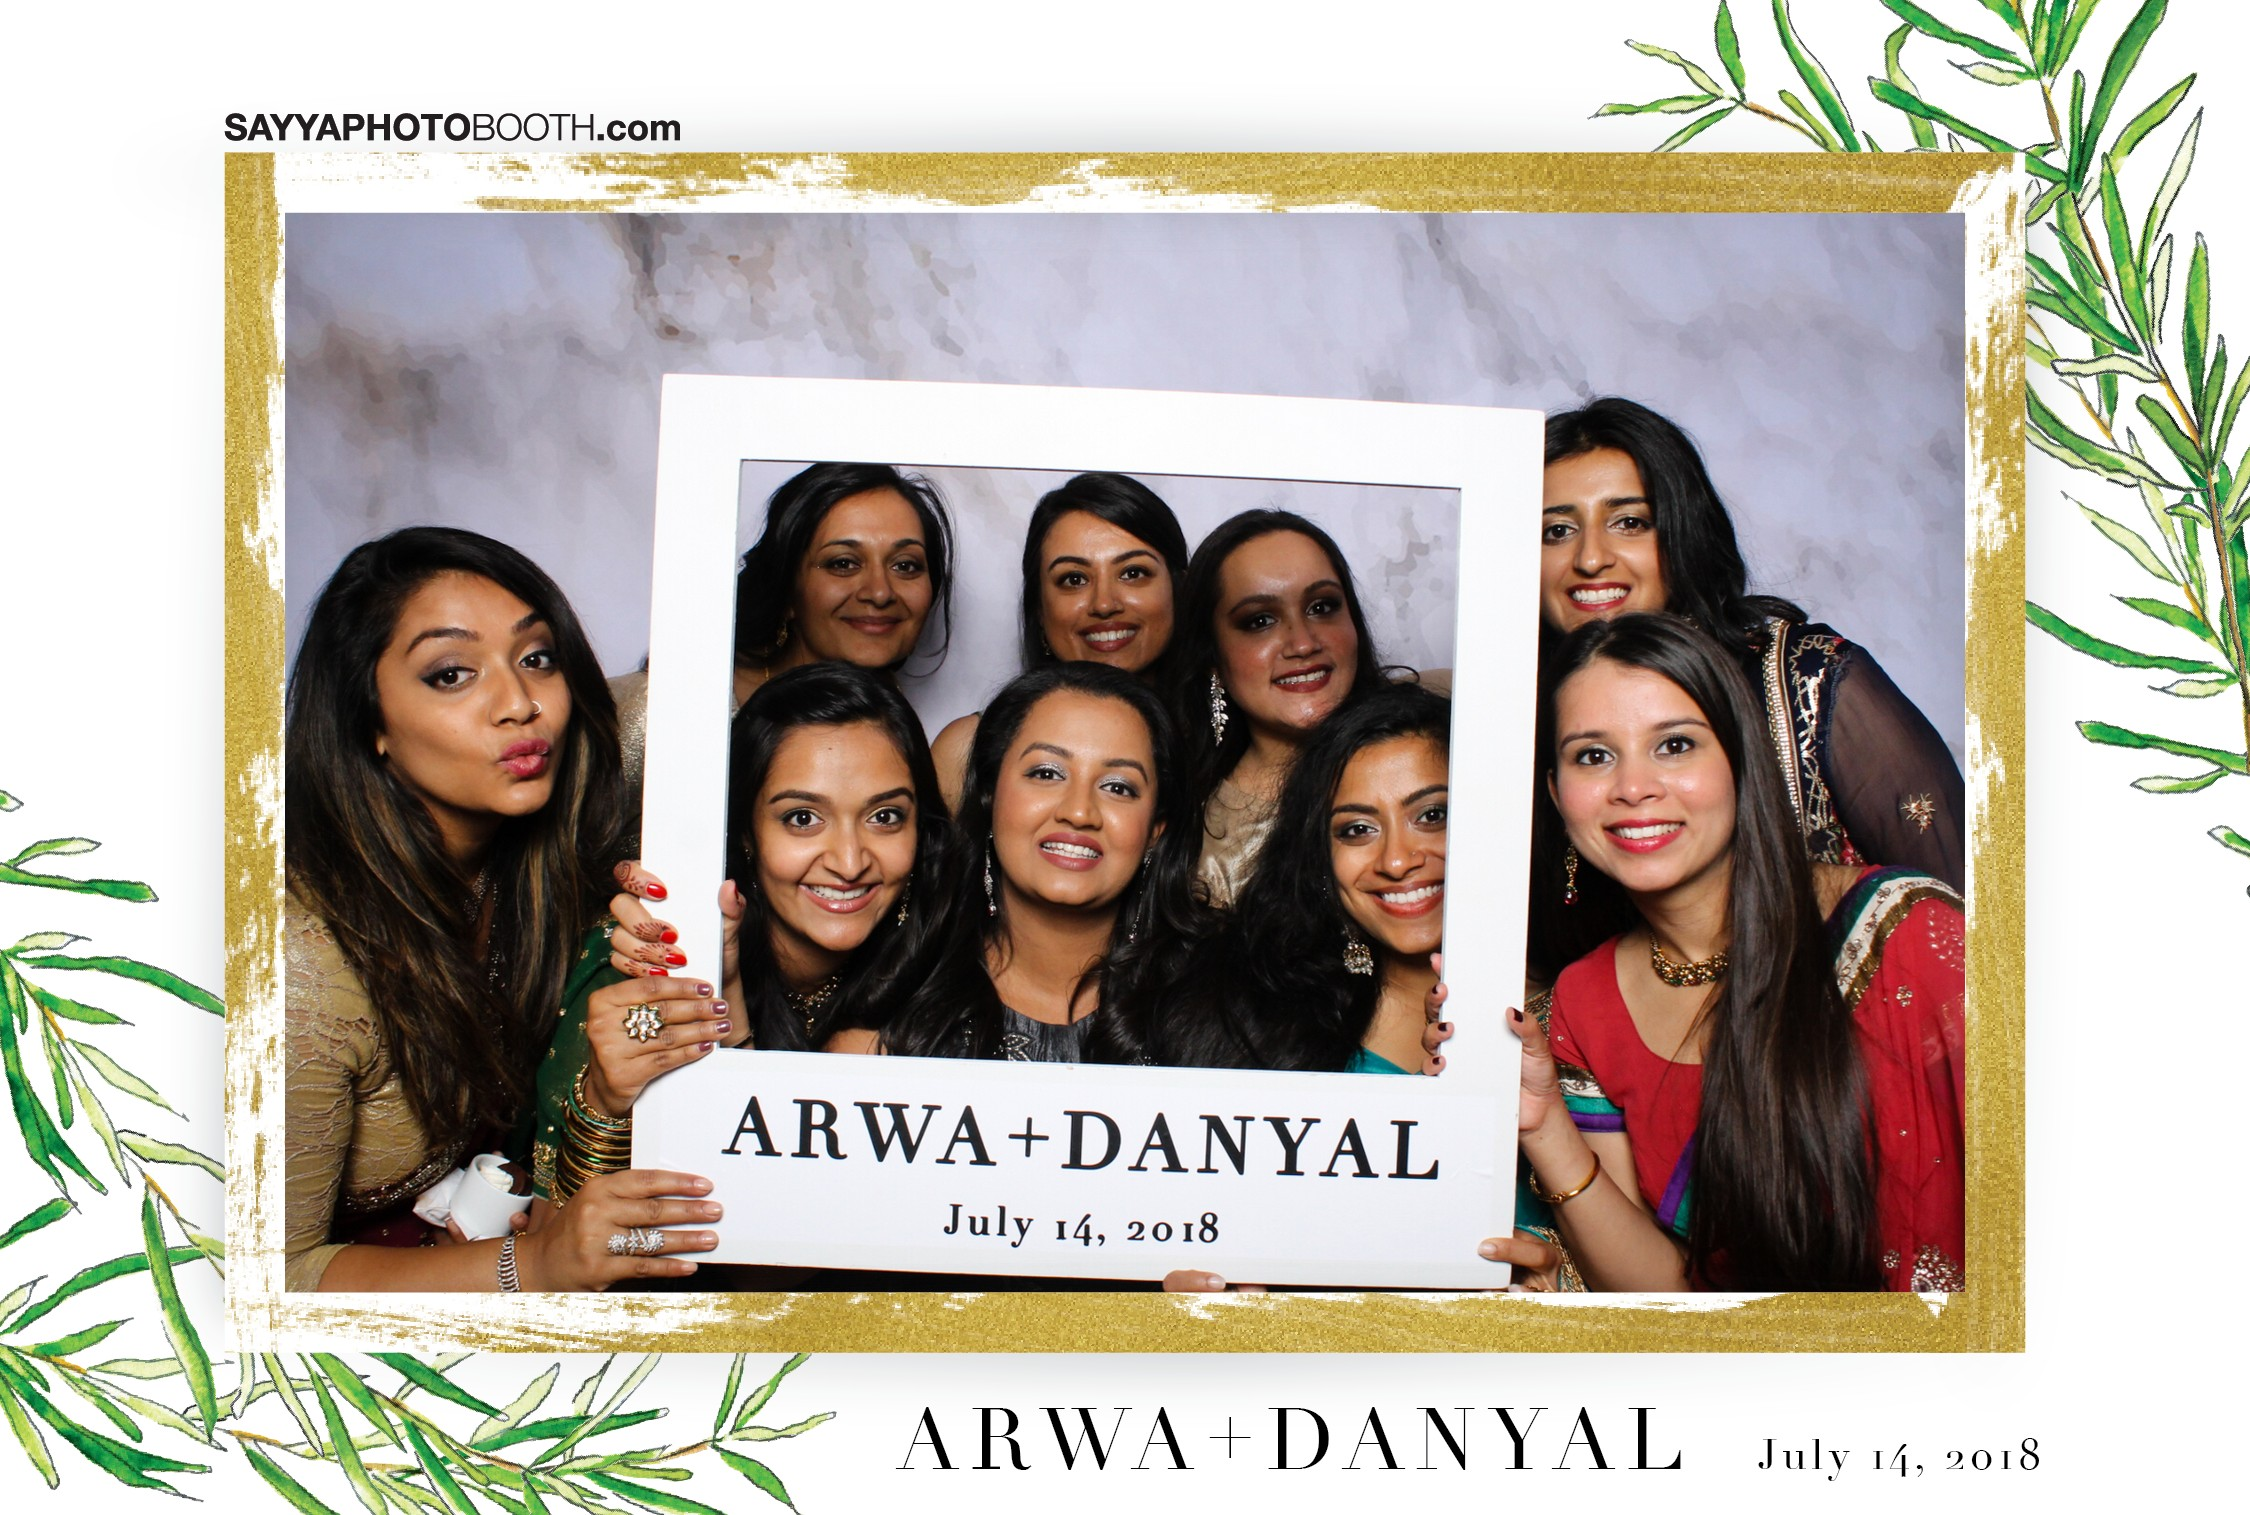 Danyal and Arwa's Wedding